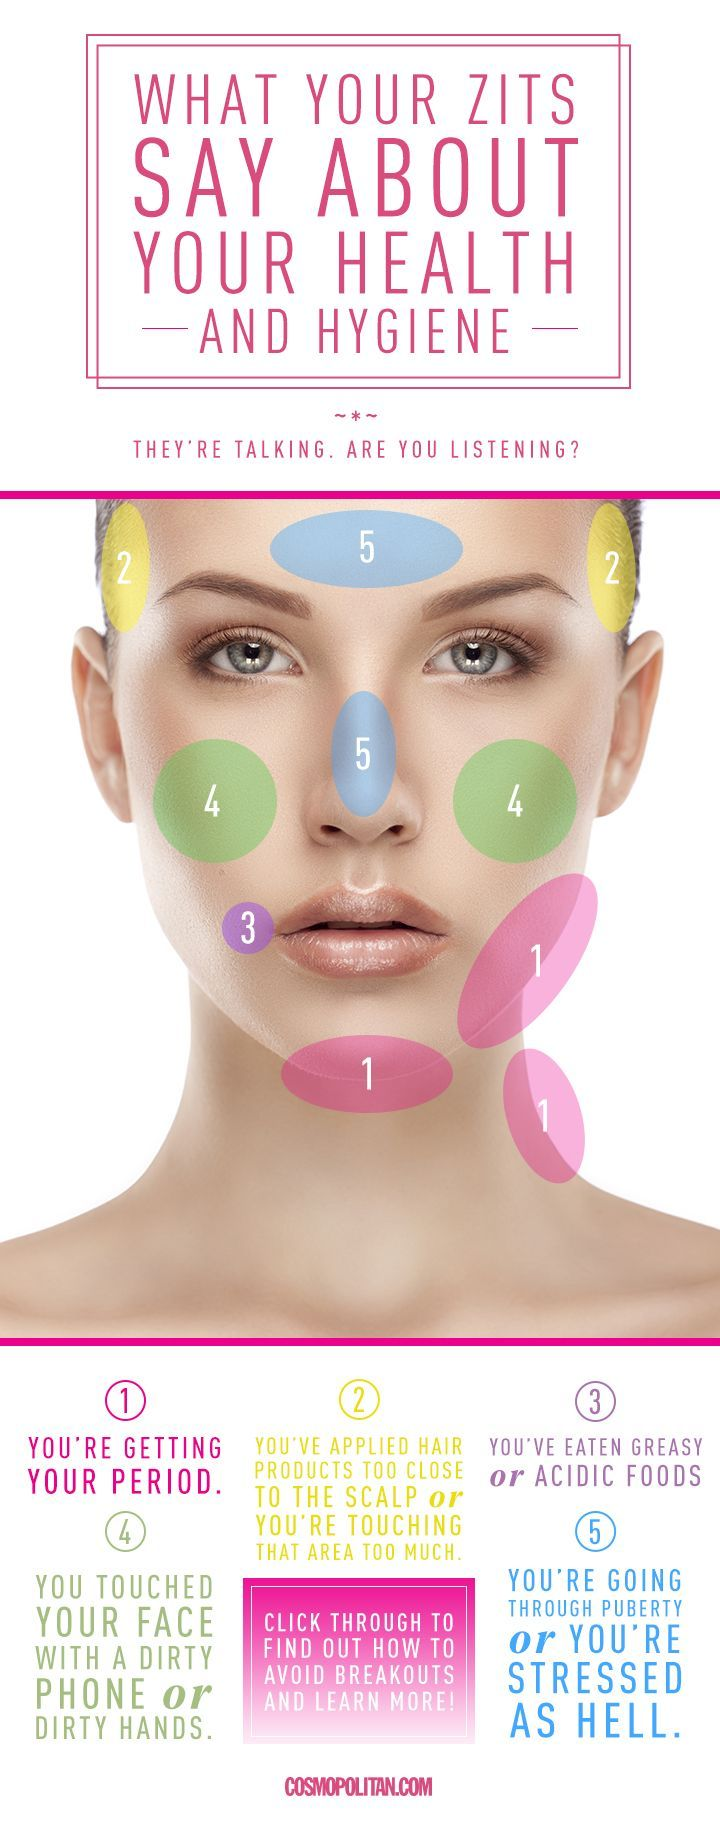 Breakouts actually don't just occur randomly, a pimple can send a pretty clear message about your health and hygiene, according to dermatologists. Keep this guide on hand to understand what your zits mean—and find out how to avoid them.   find more relevant stuff: http://skintightnaturals.com/